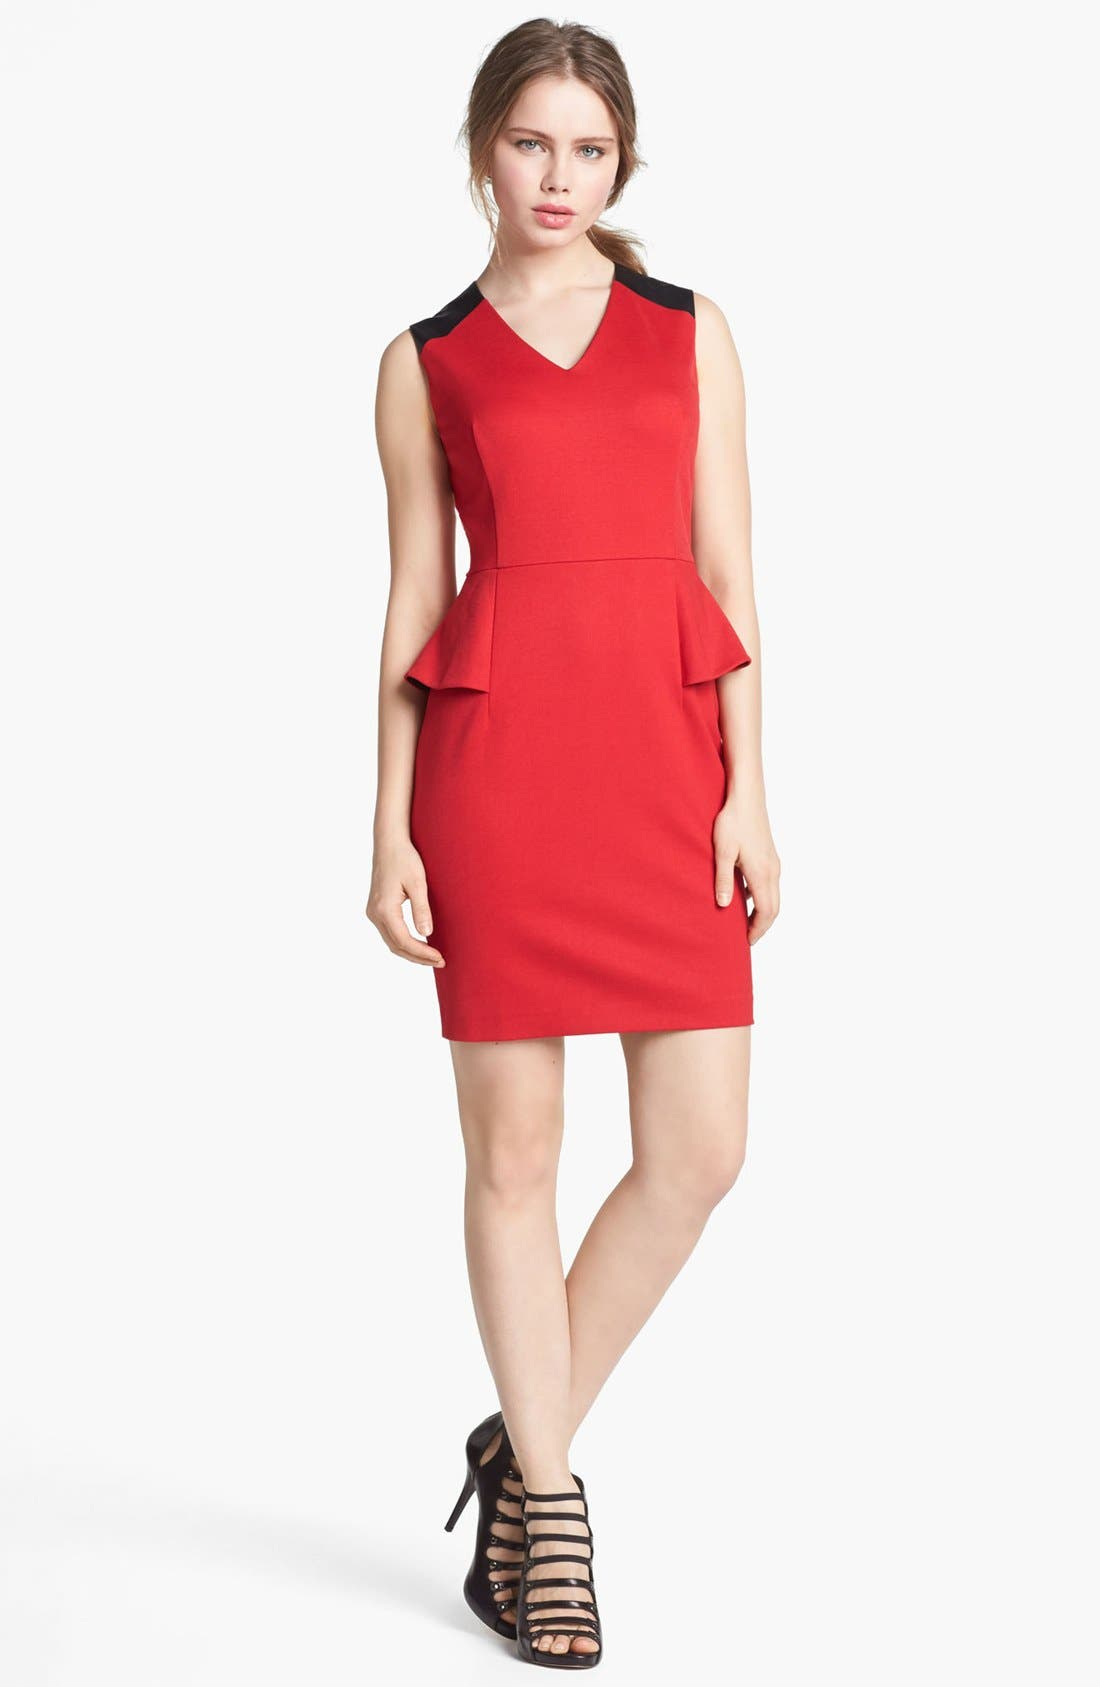 Main Image - Vince Camuto Faux Leather Shoulder Detail Peplum Dress